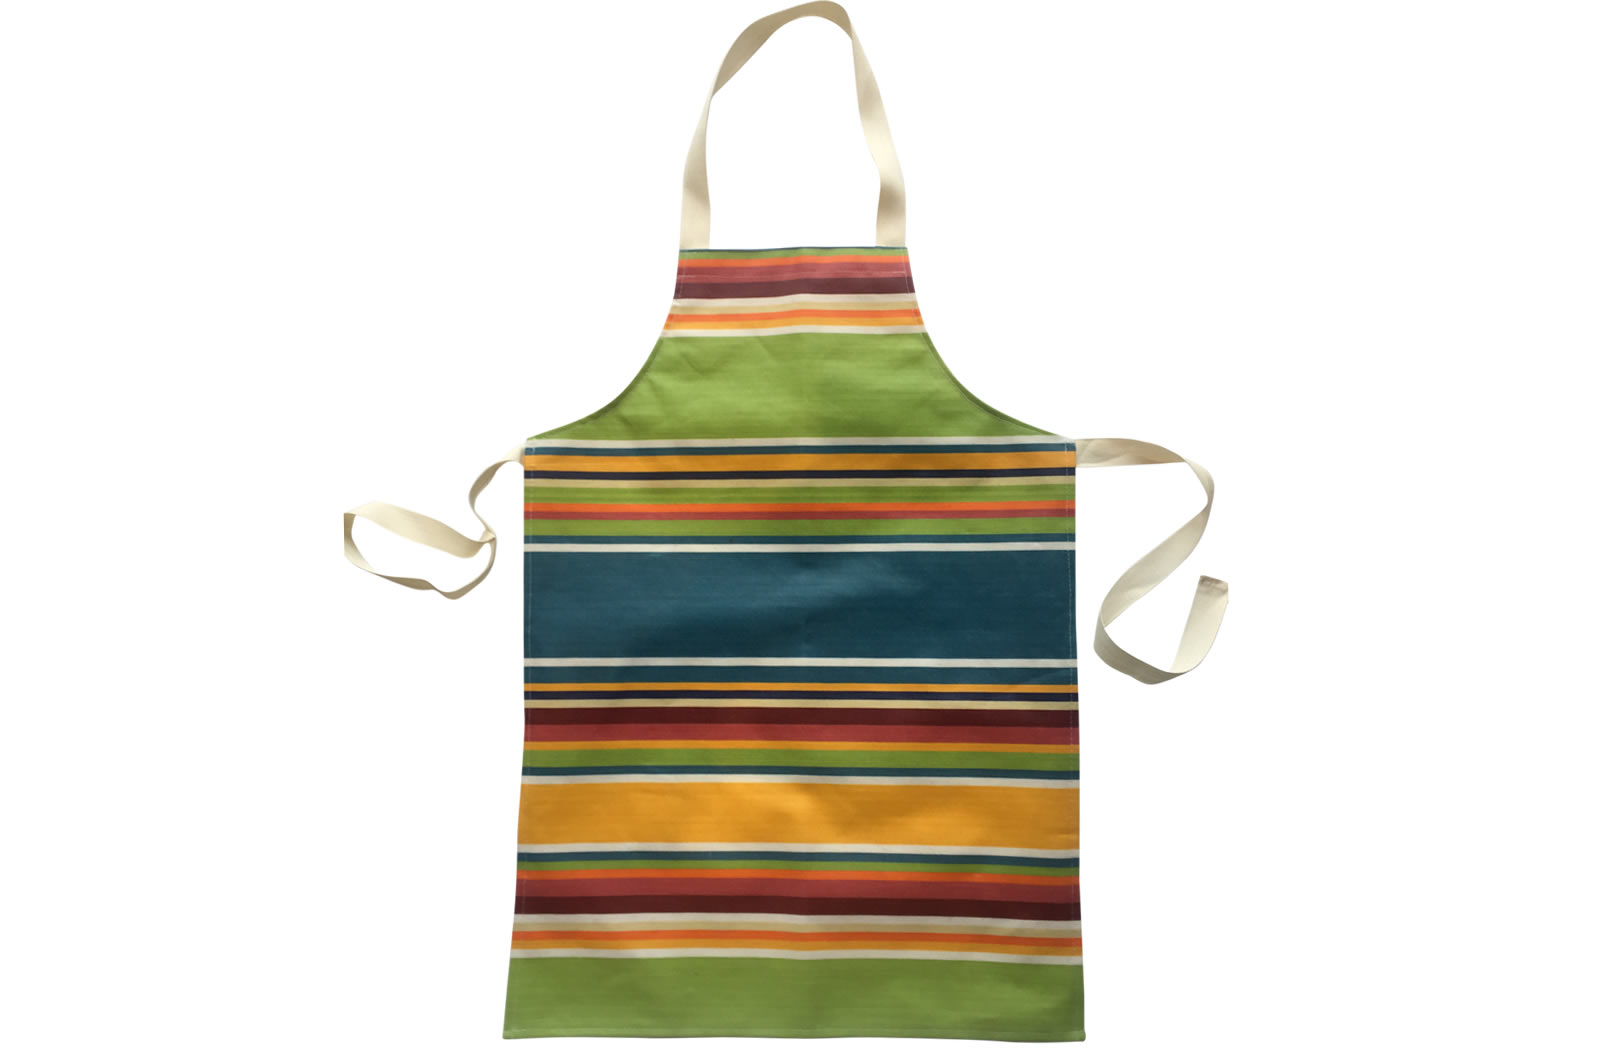 Oilcloth PVC Apron for Children in yellow, pale green and sky blue stripes